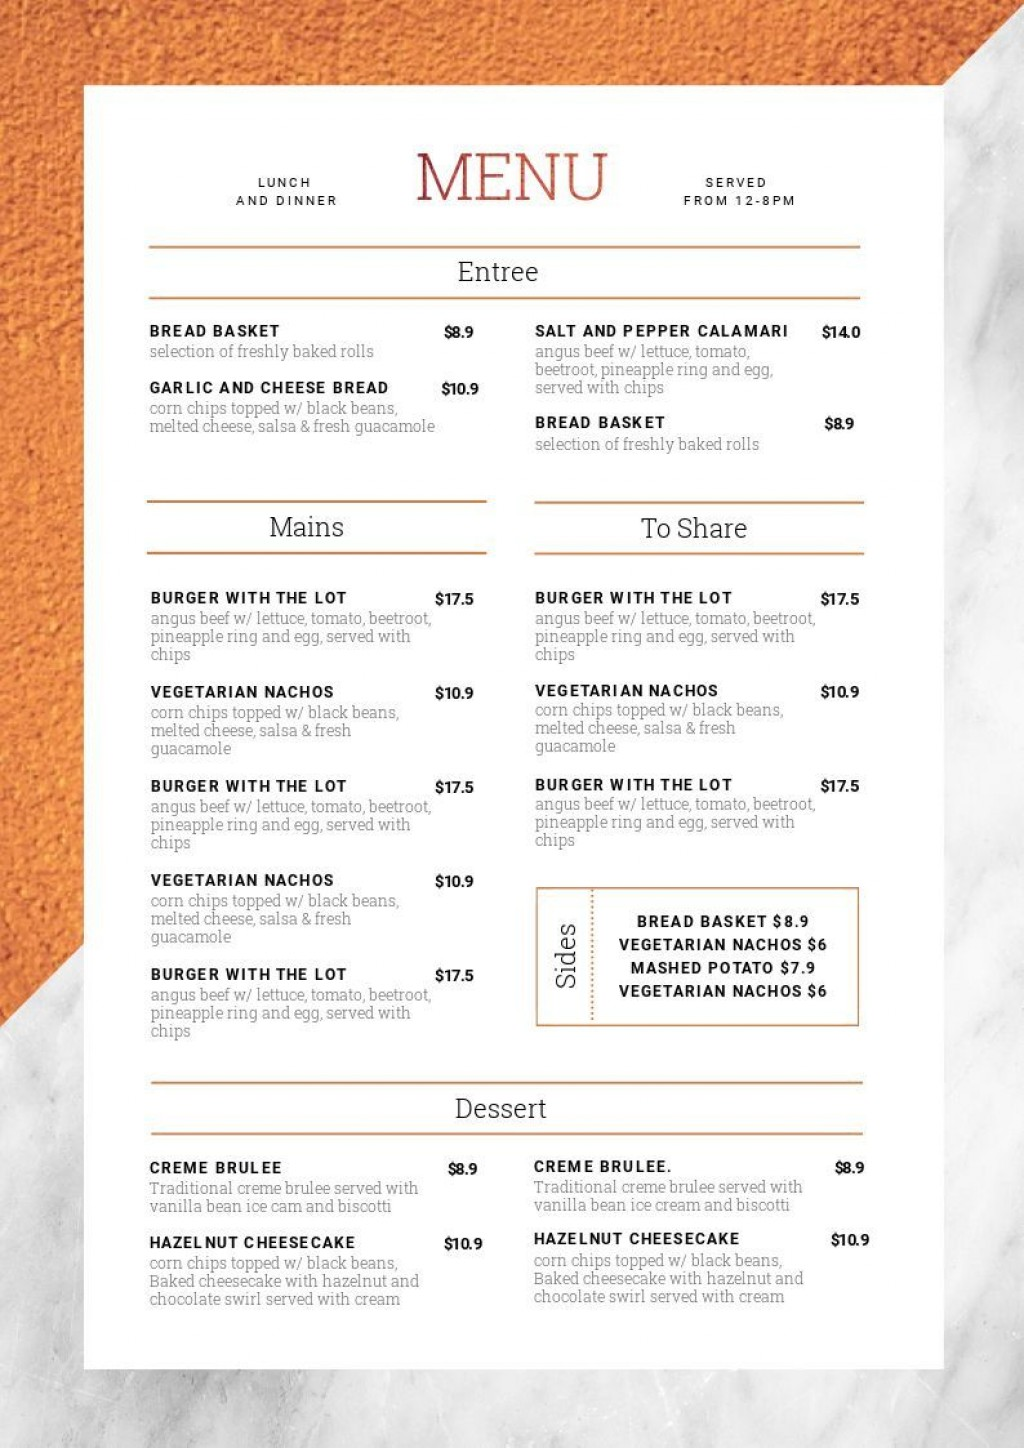 Menu Template Free Download With Price  Restaurant Psd Word HtmlLarge